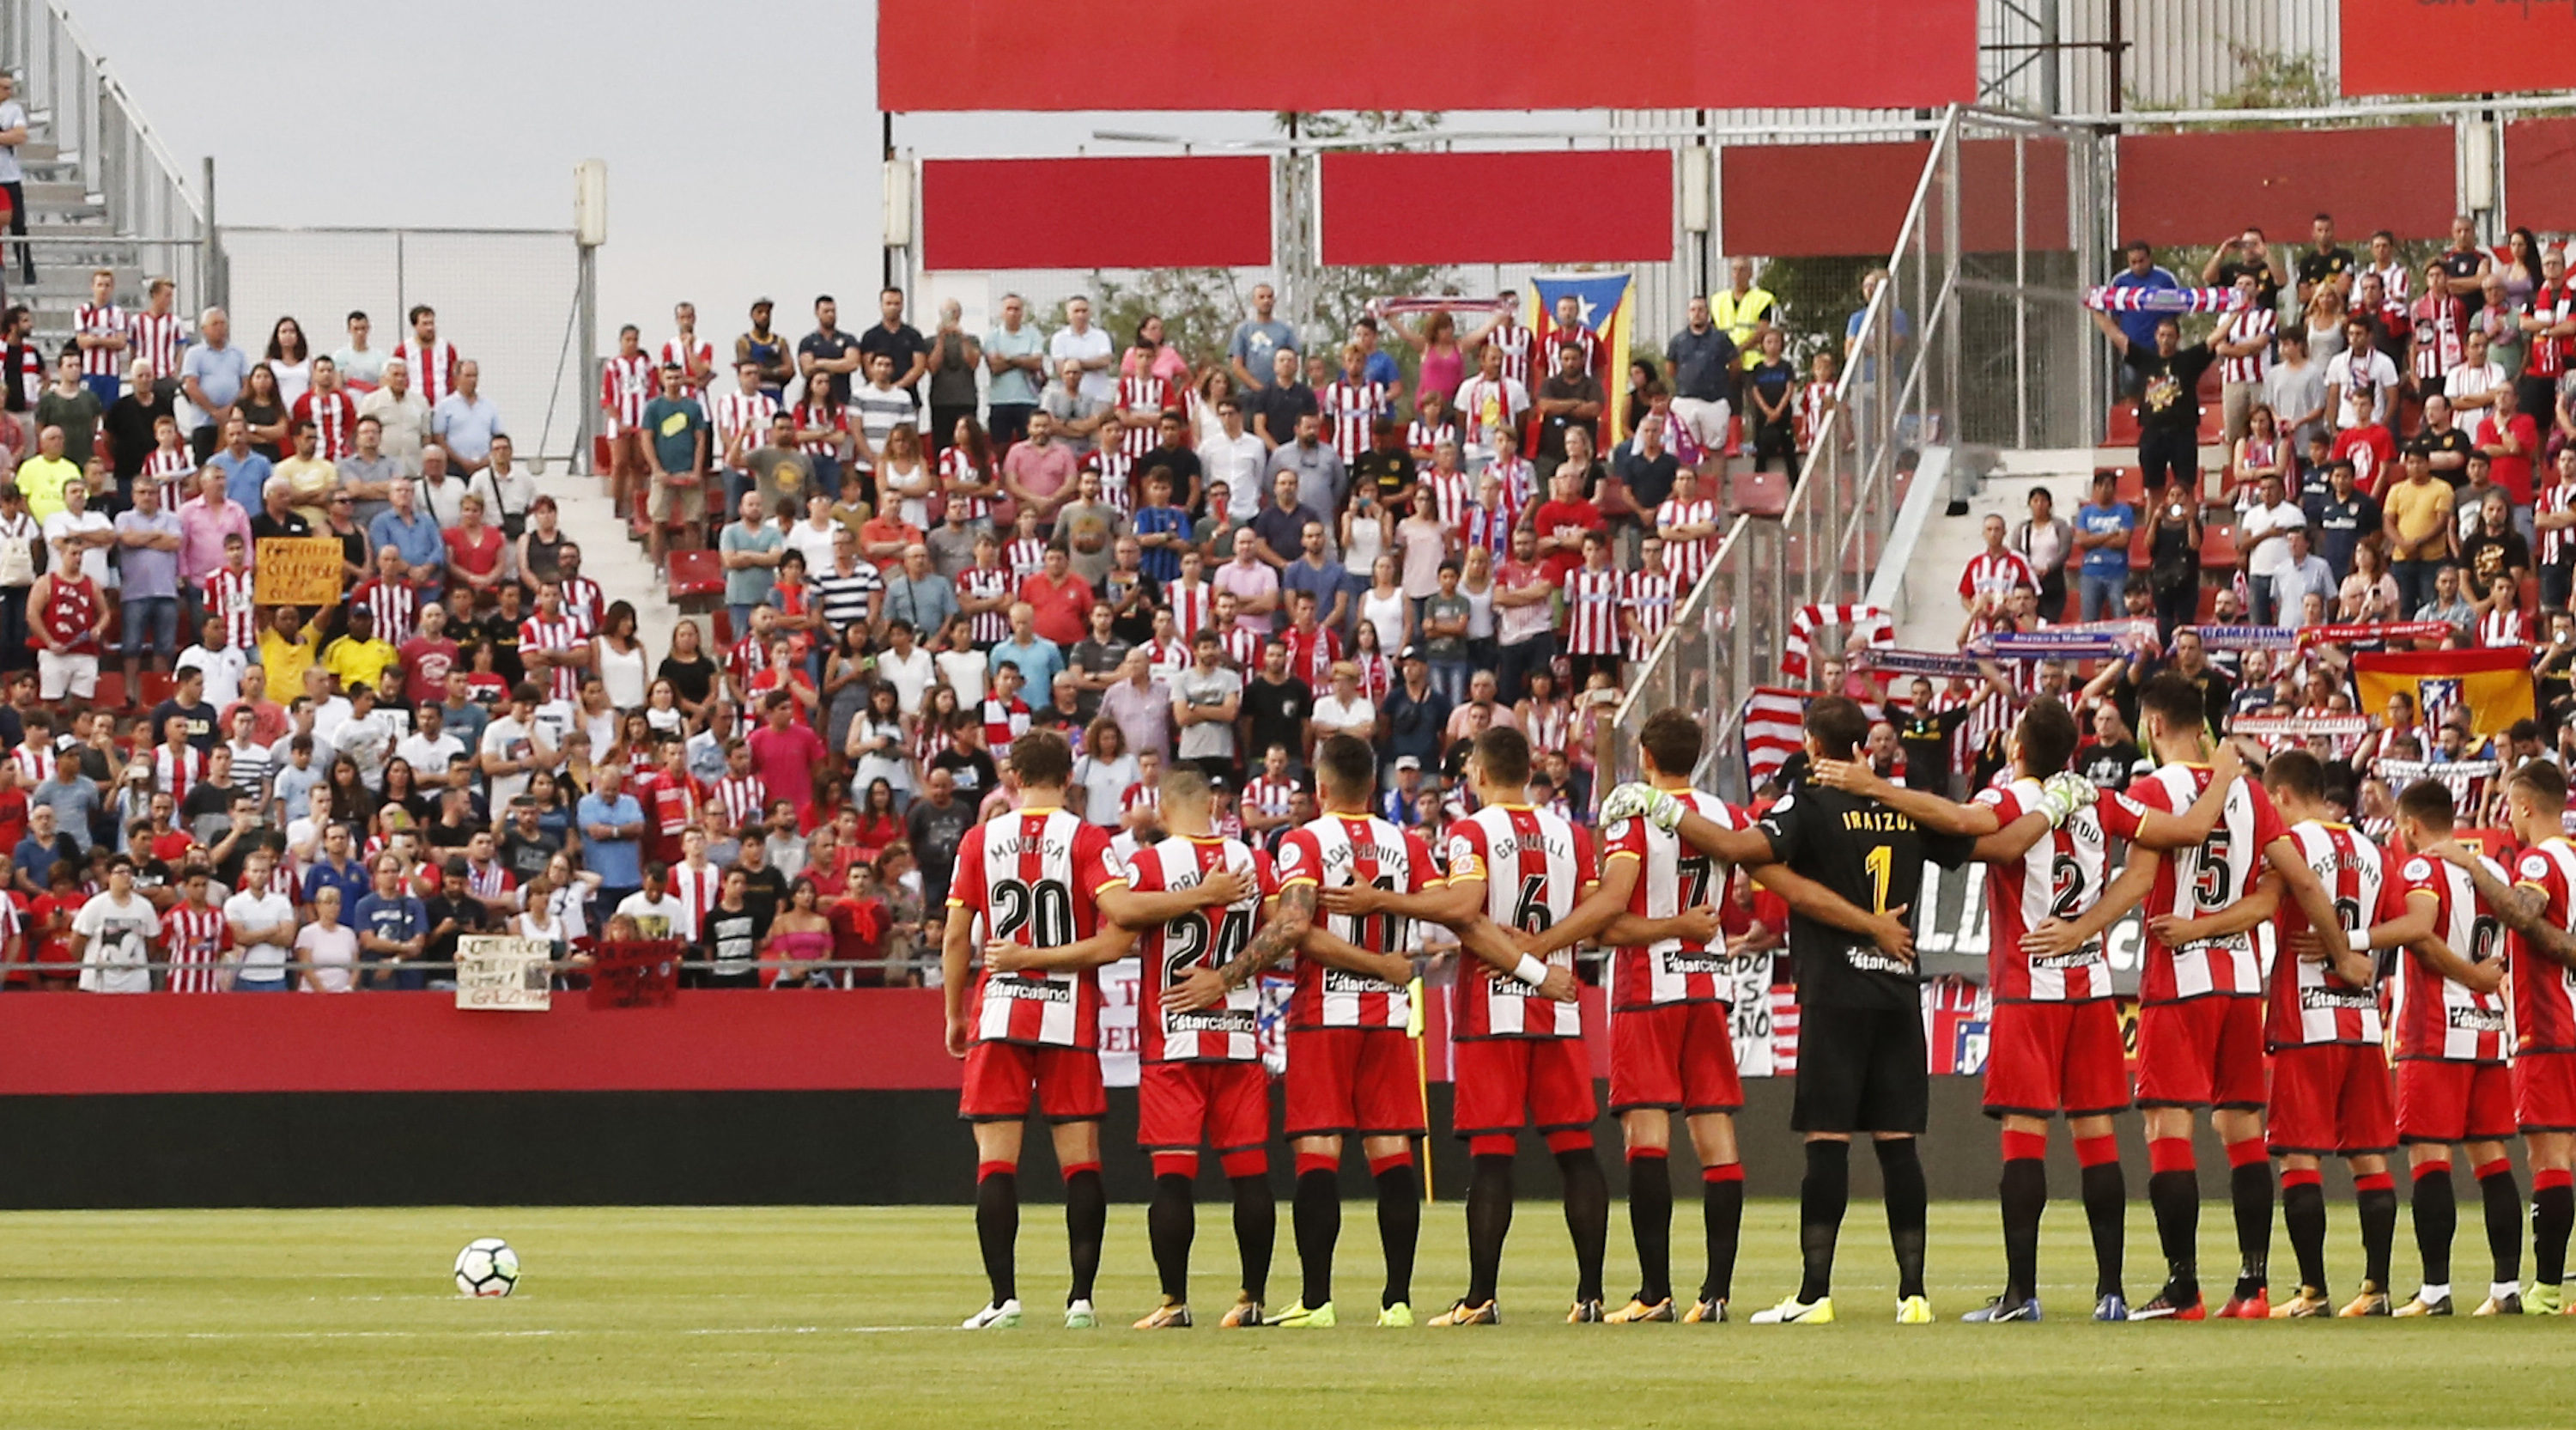 Atletico's and Girona's players observe a minute's silence for the victims of Barcelona's attack before the Spanish league football match Girona FC vs Club Atletico de Madrid at the Municipal de Montilivi stadium in Girona on August 19, 2017. / AFP PHOTO / PAU BARRENA (Photo credit should read PAU BARRENA/AFP/Getty Images)